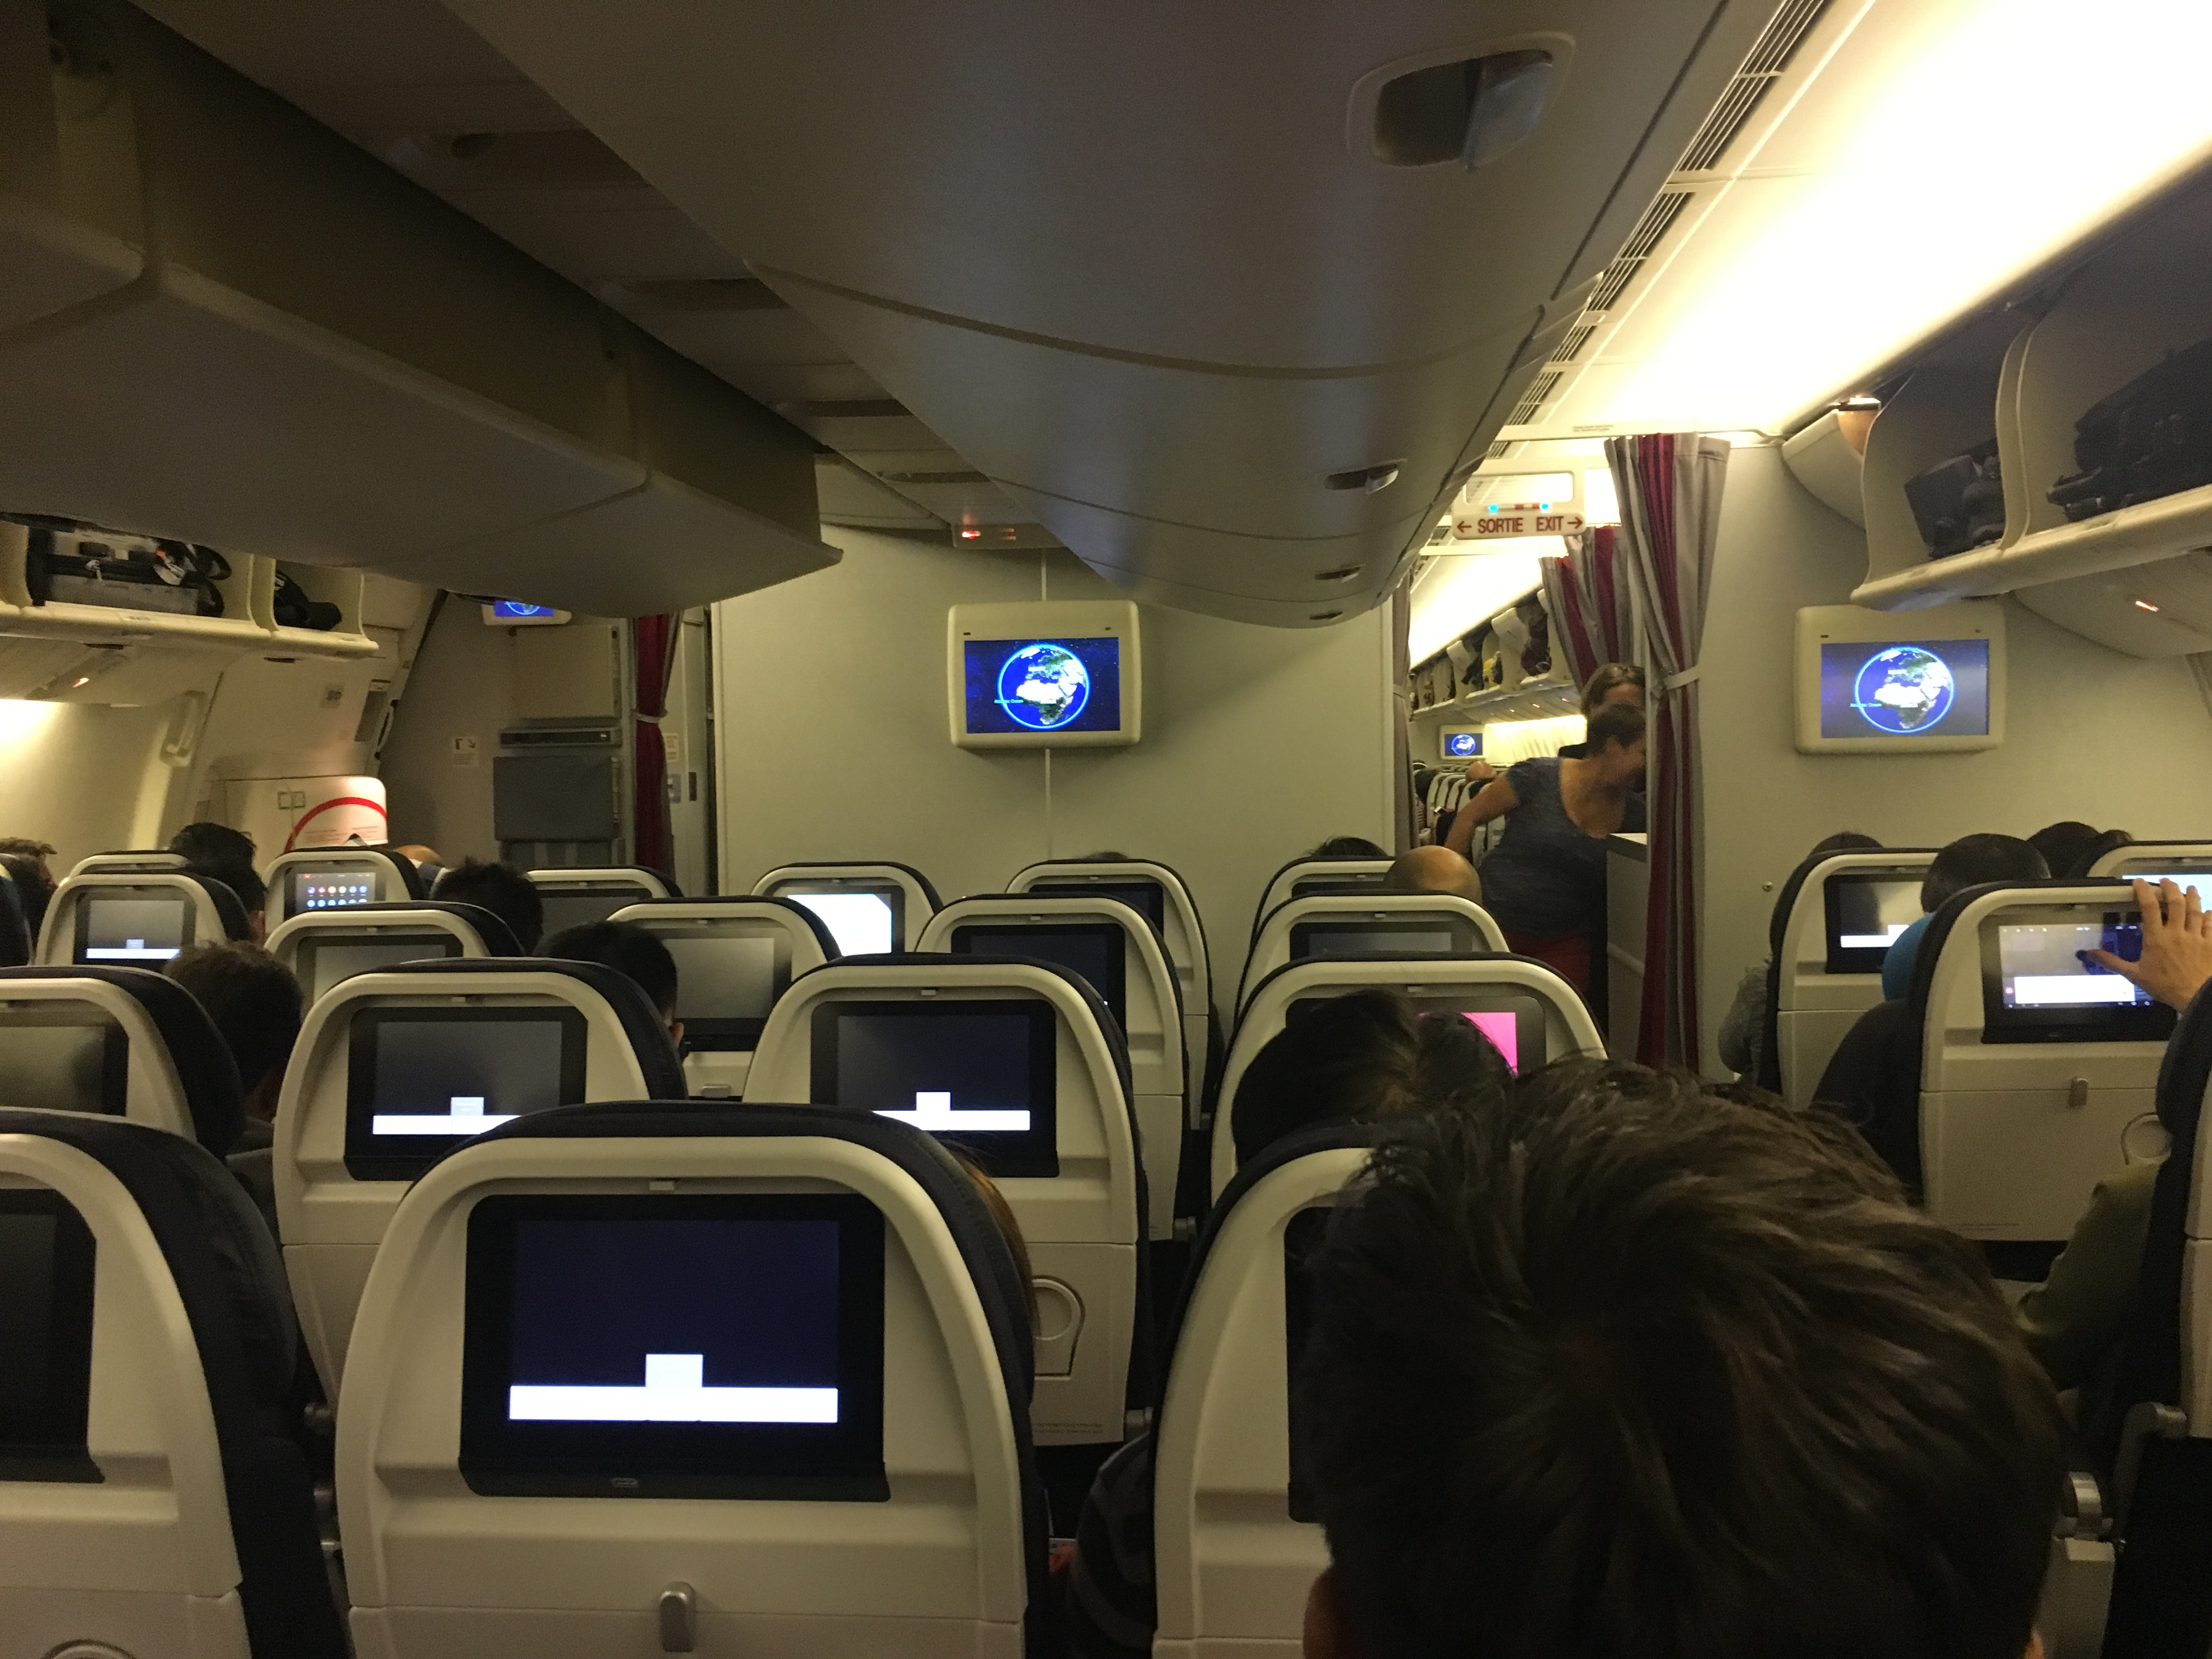 air france seat assignment Travel with extra leg room, be among the first passengers to exit the aircraft, enjoy the calm environment of a smaller cabin or reserve a seat with just one neighbor.